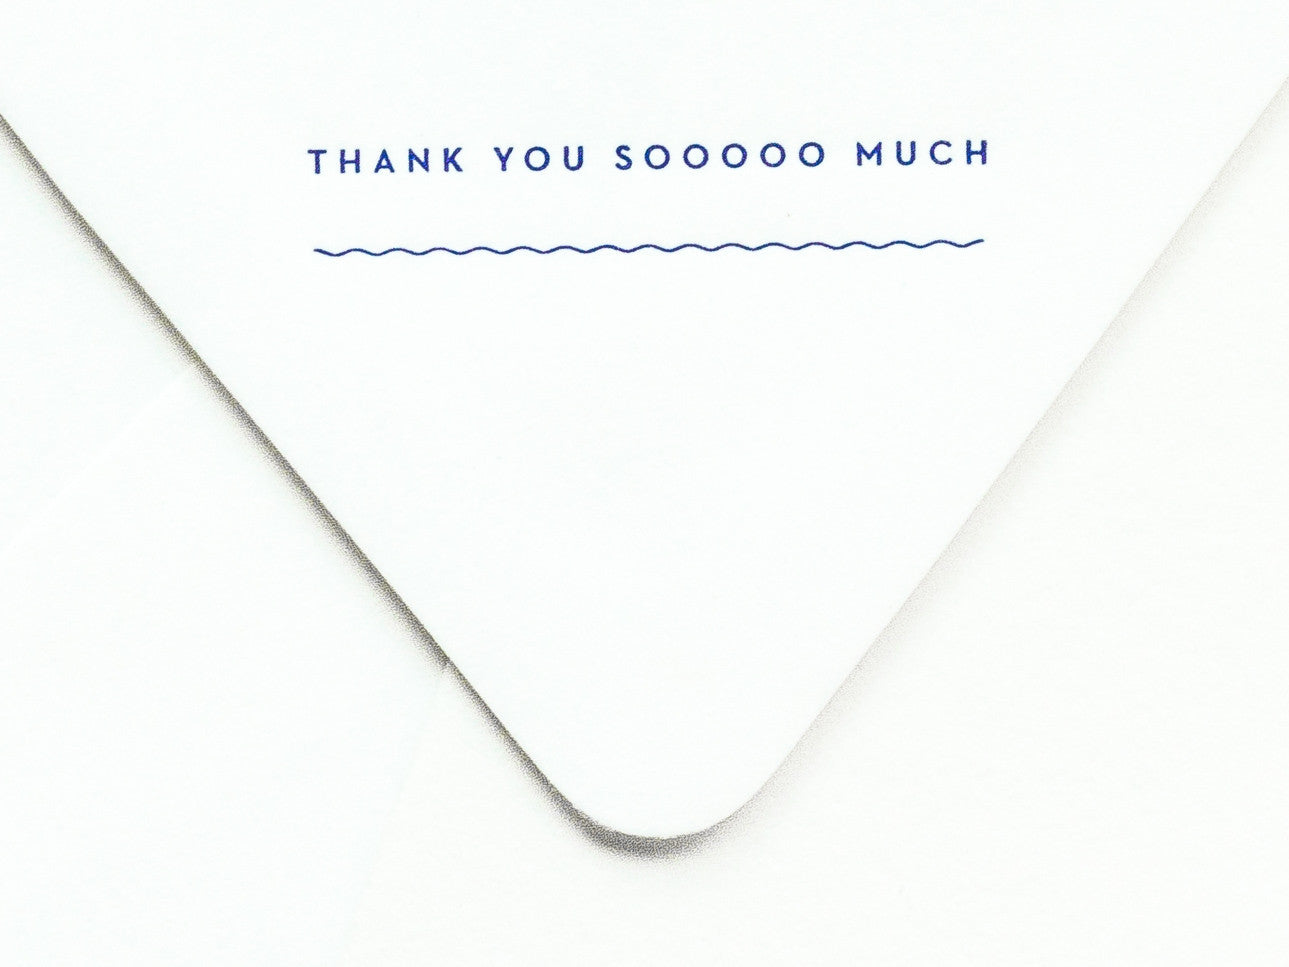 Thank You Sooooo Much Notevelope & Heart Notecard